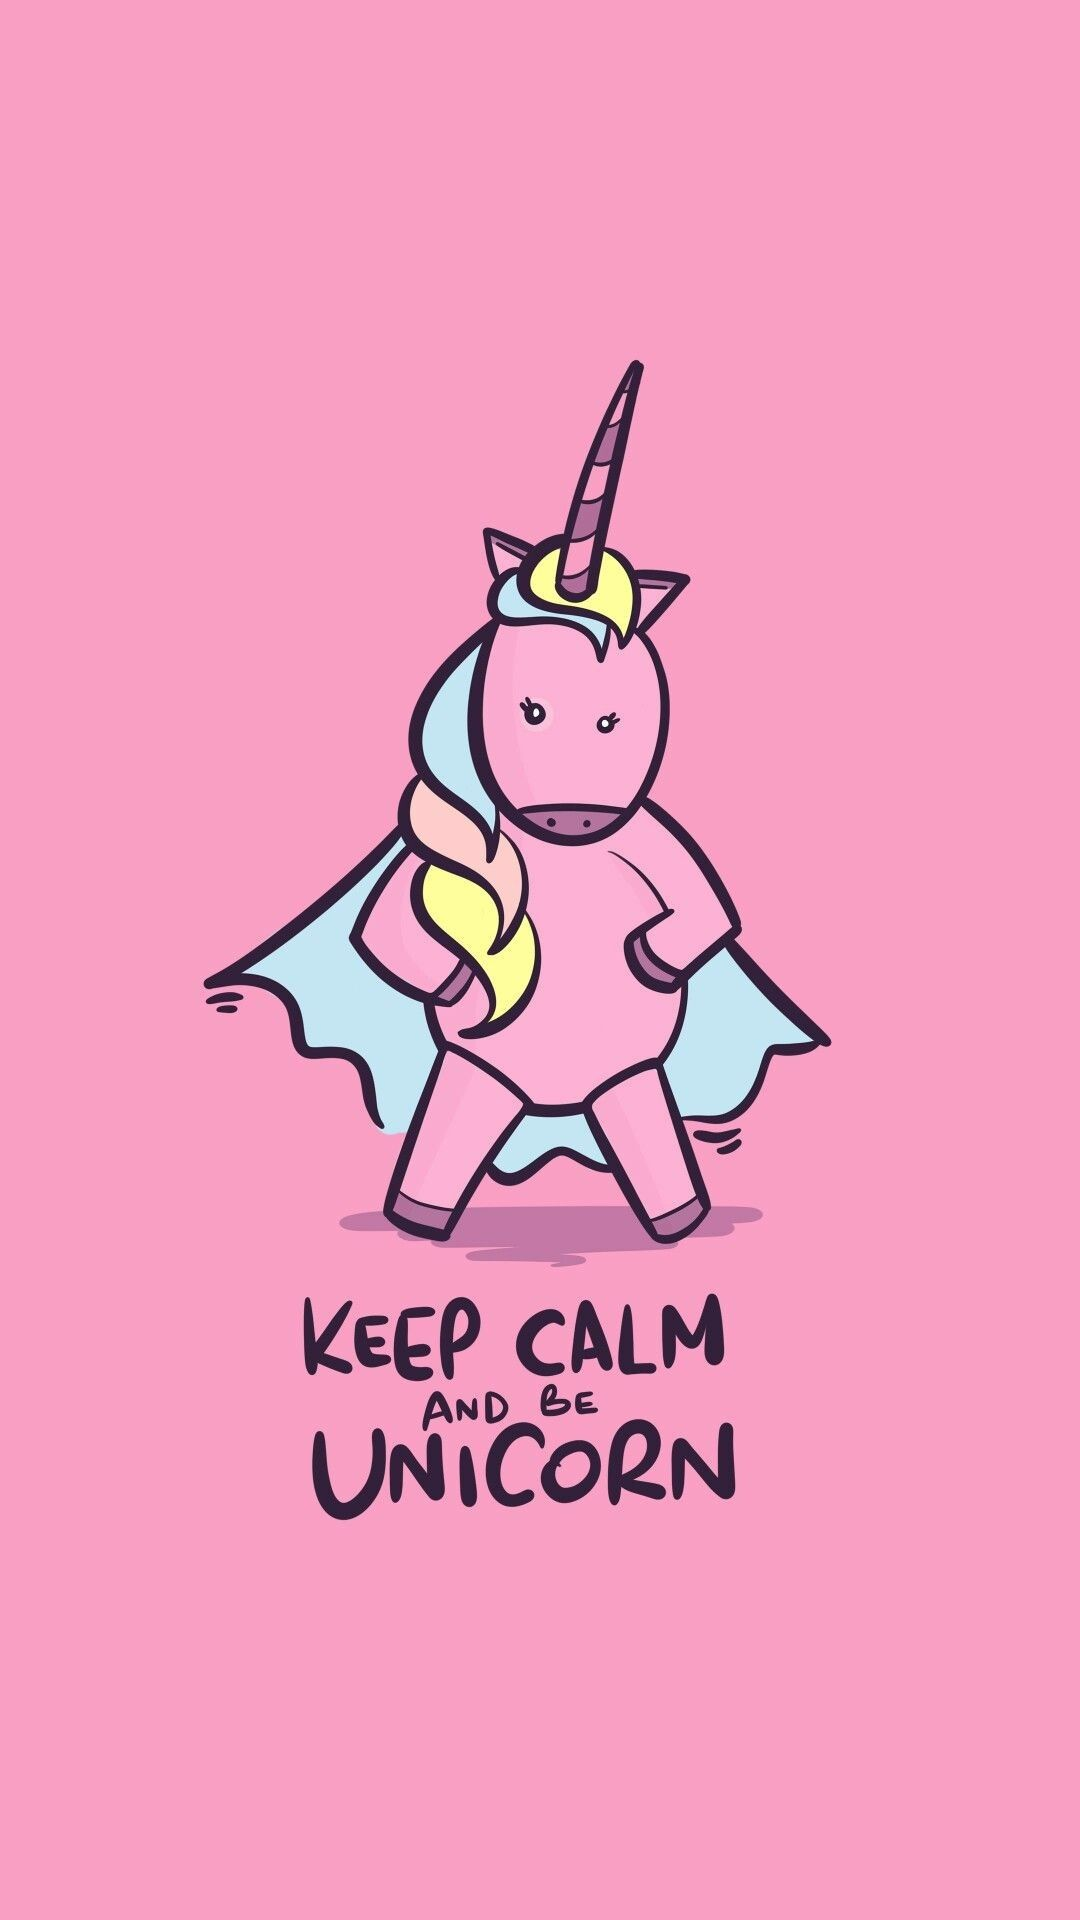 Pin By Paperpop On Wallpapers Unicorn Wallpaper Cute Unicorn Wallpaper Pink Unicorn Wallpaper